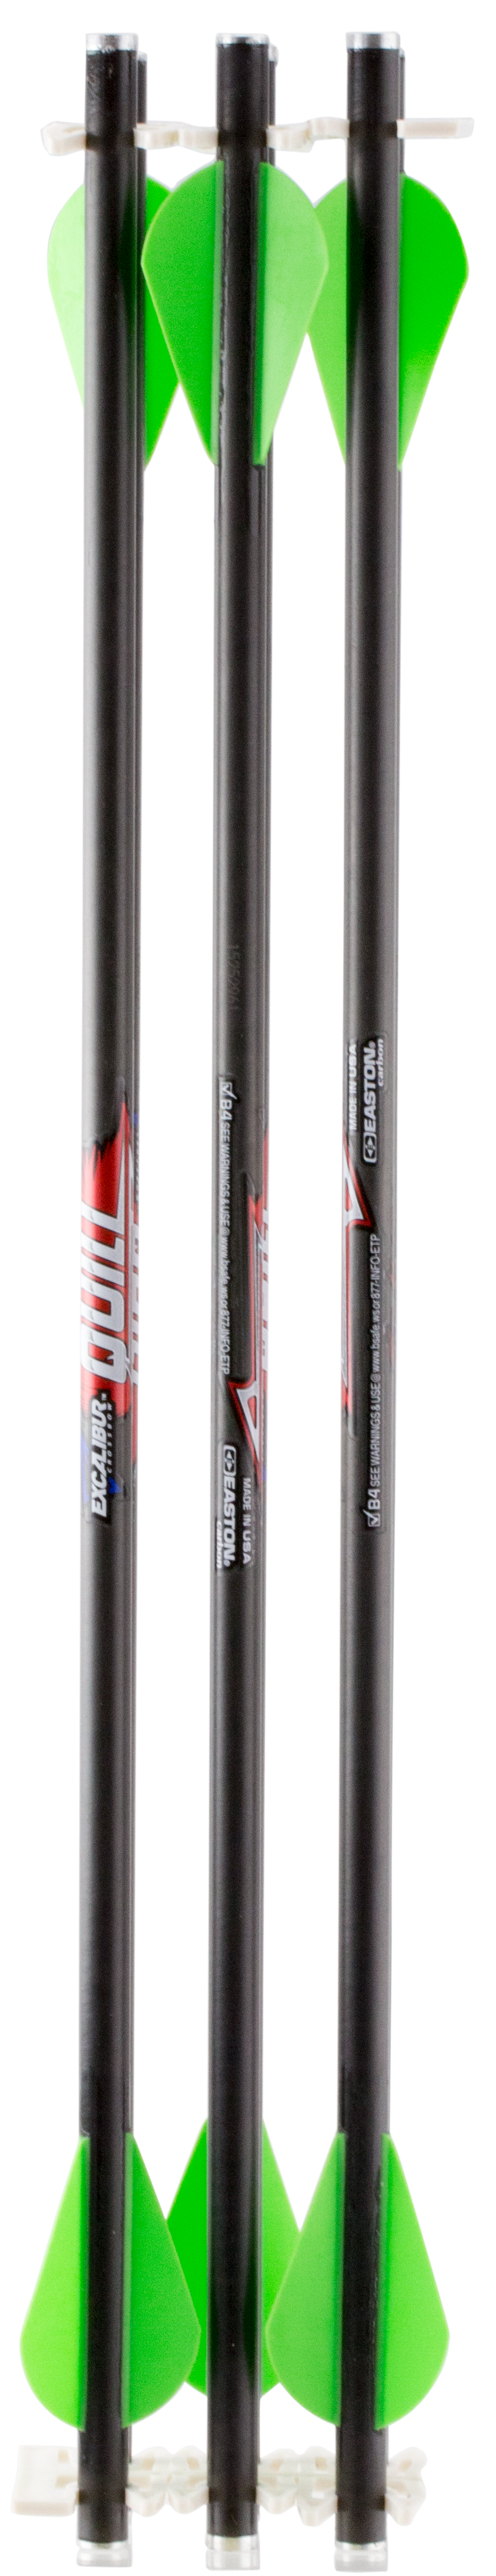 Excalibur 22QV166 Carbon Arrows Fieldpoint Blk